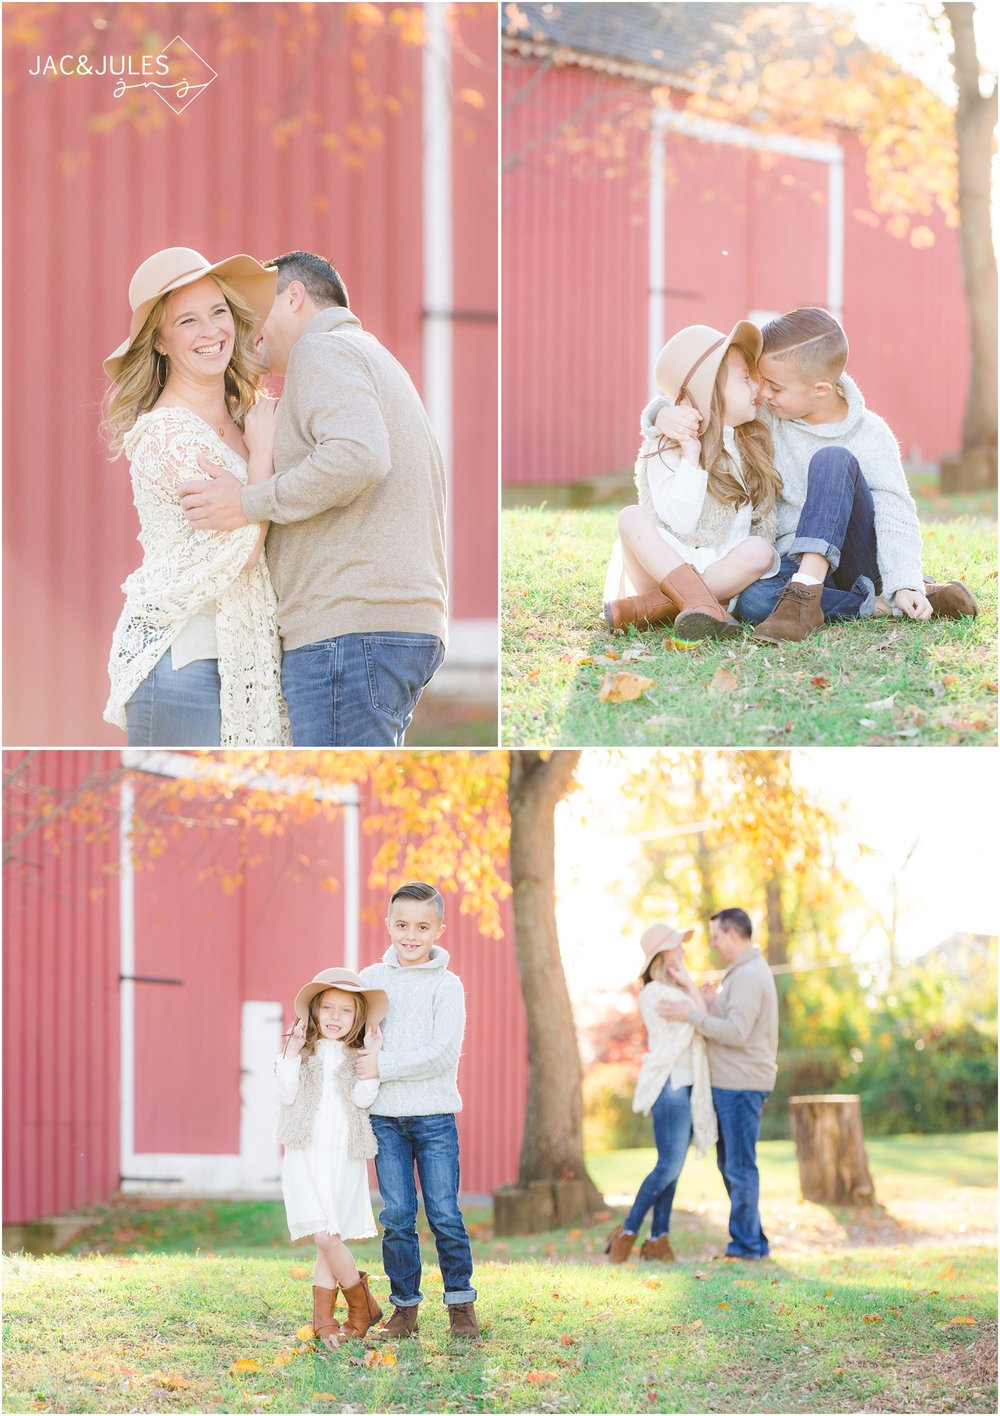 Creative Family photos with red barn at Bayonet Farm in Holmdel, NJ.